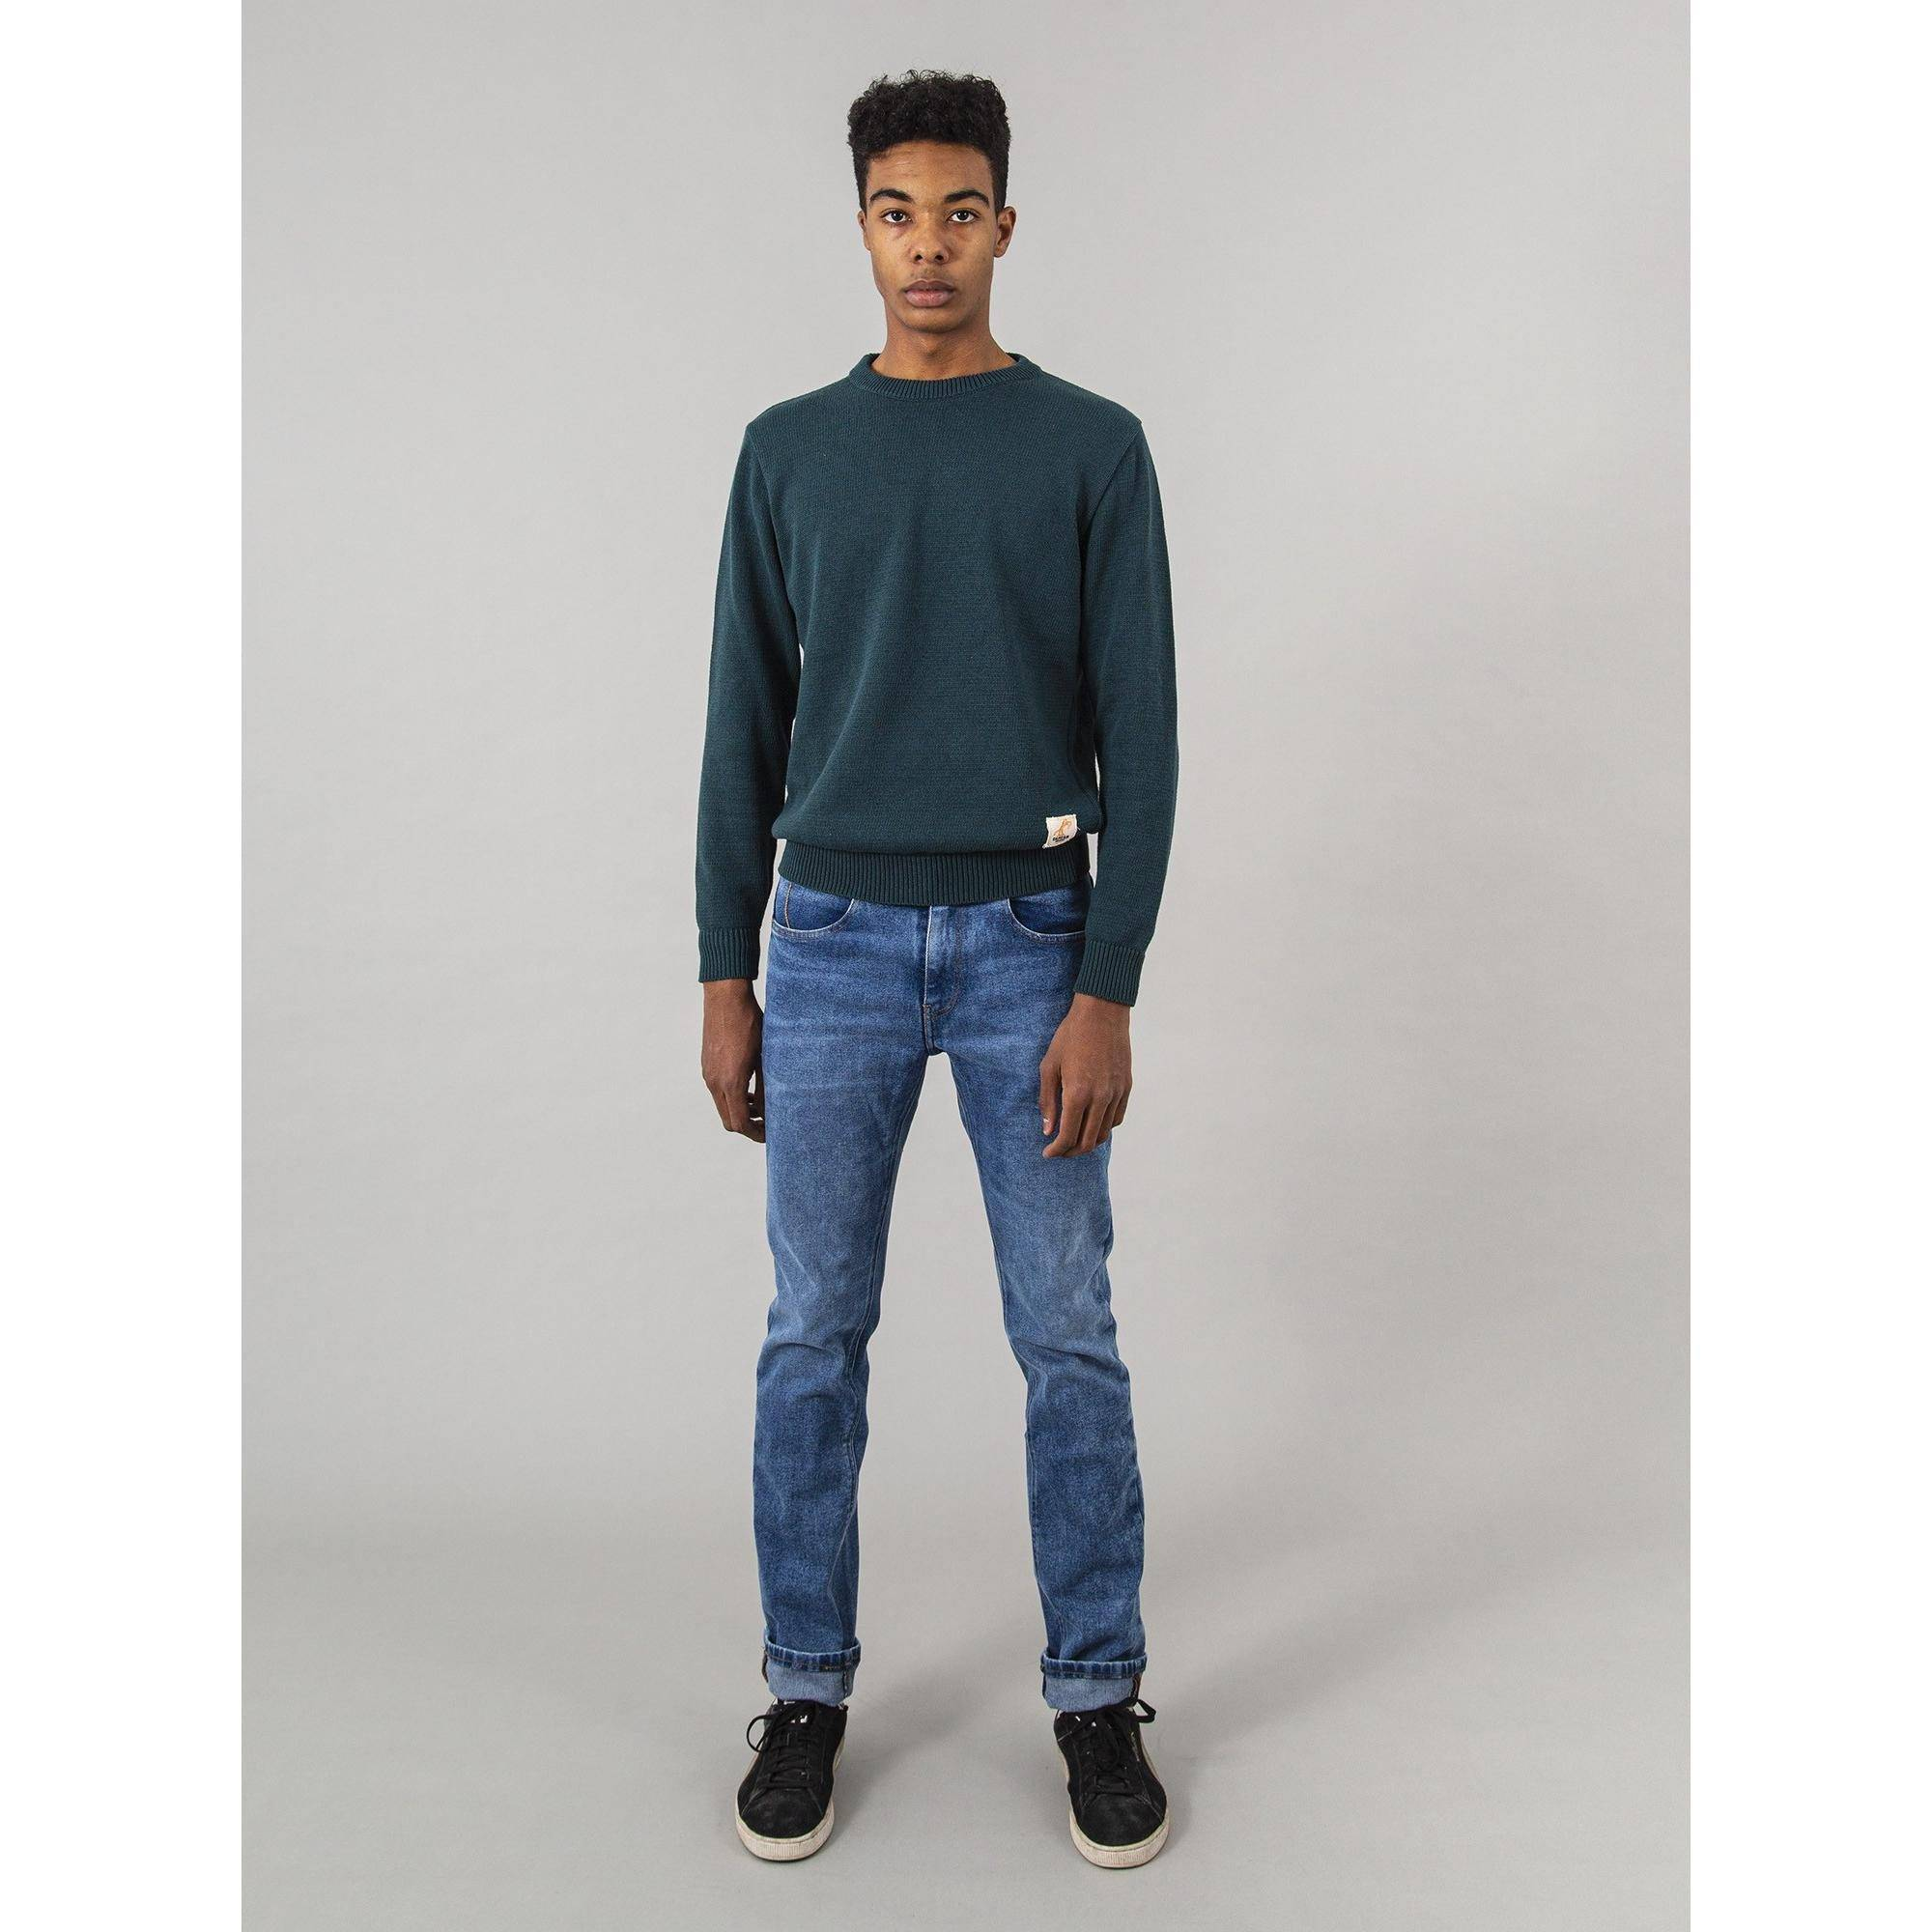 Capitán Denim Vaqueros RAY ECO RE-FORCED BLUE algodón reciclado Capitán Denim 44